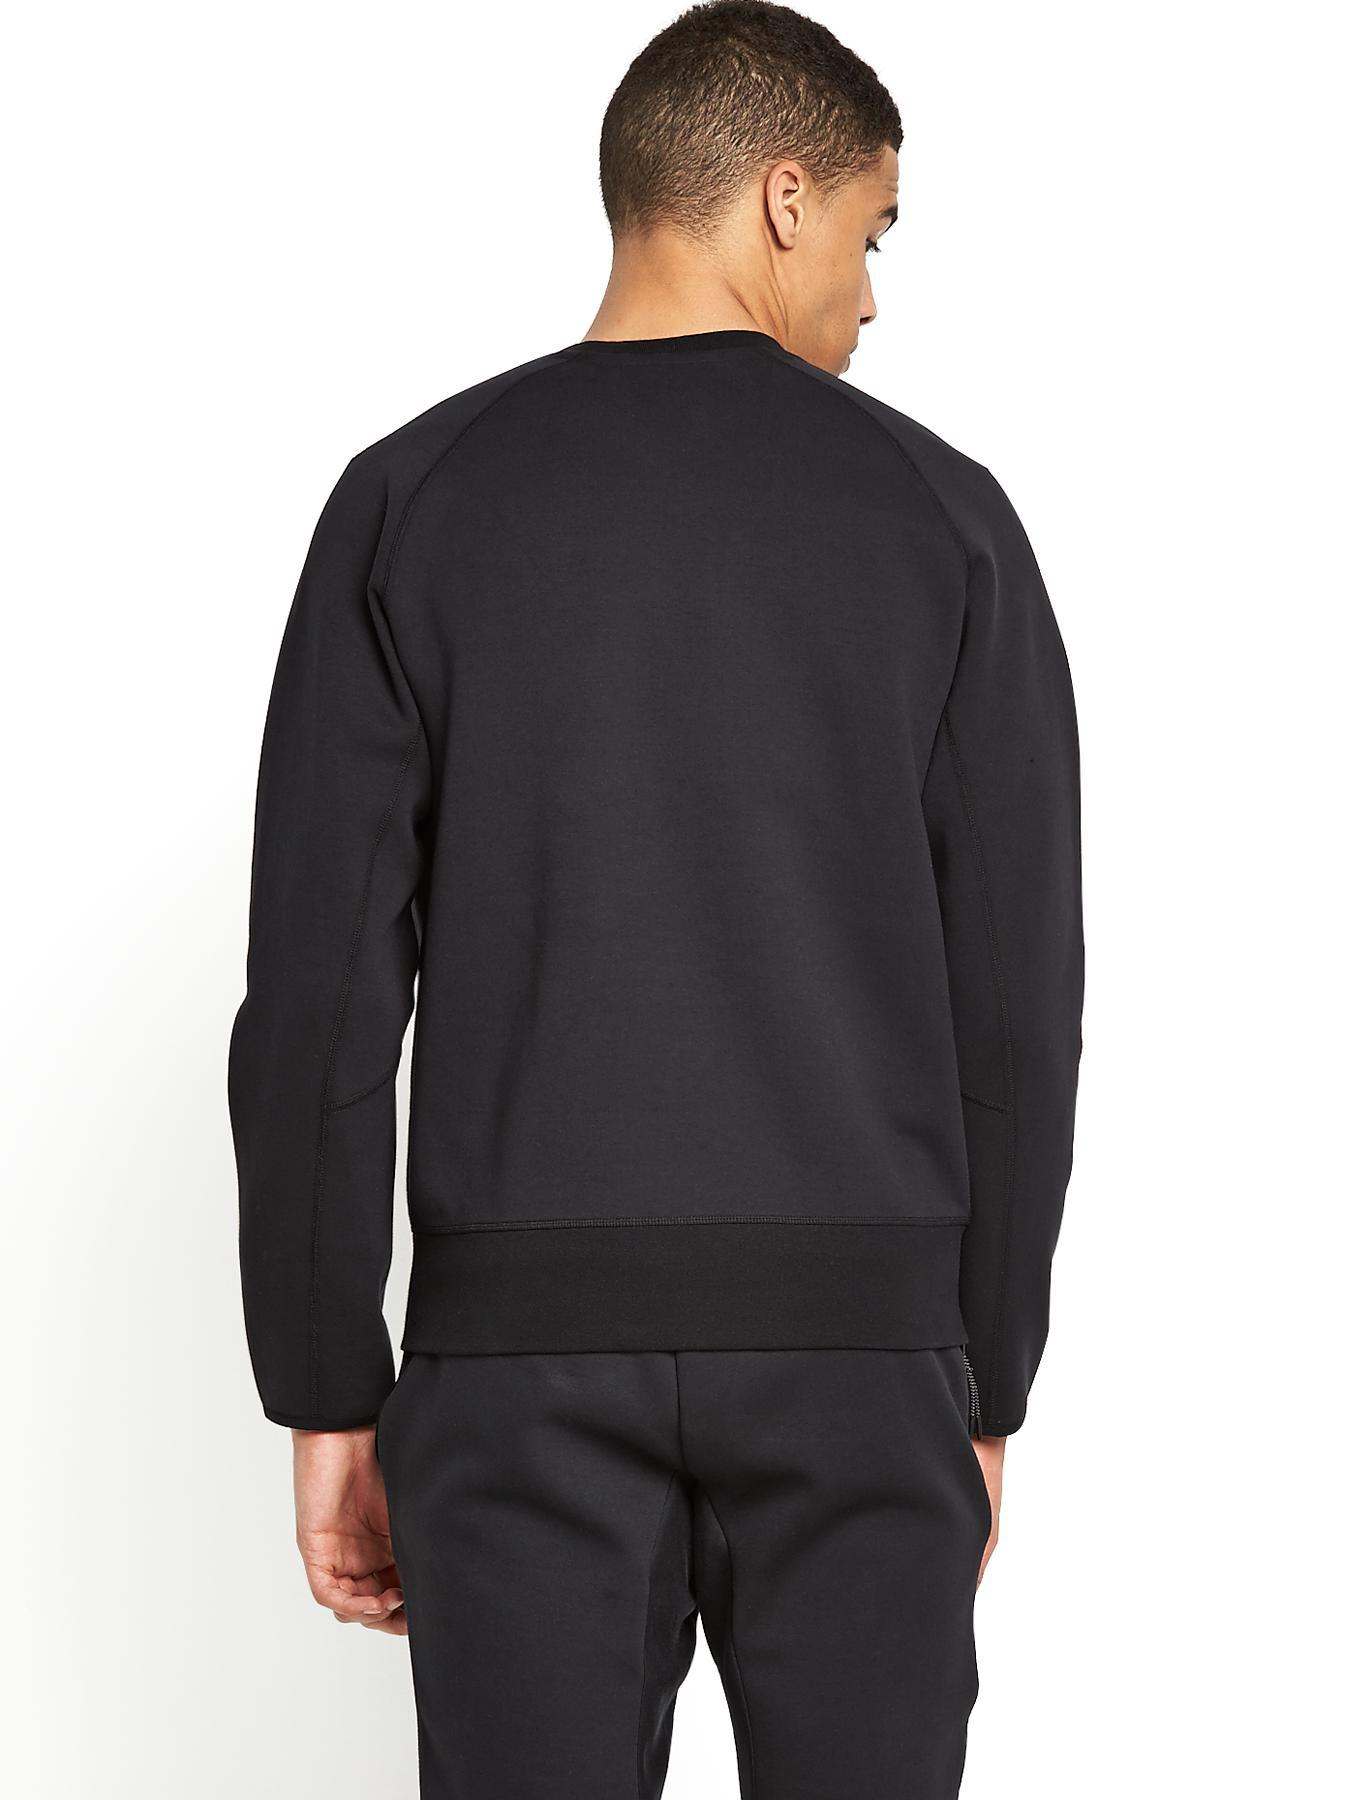 Find a great selection of men's fleece sweatshirts and hoodies at 0549sahibi.tk Totally free shipping and returns.